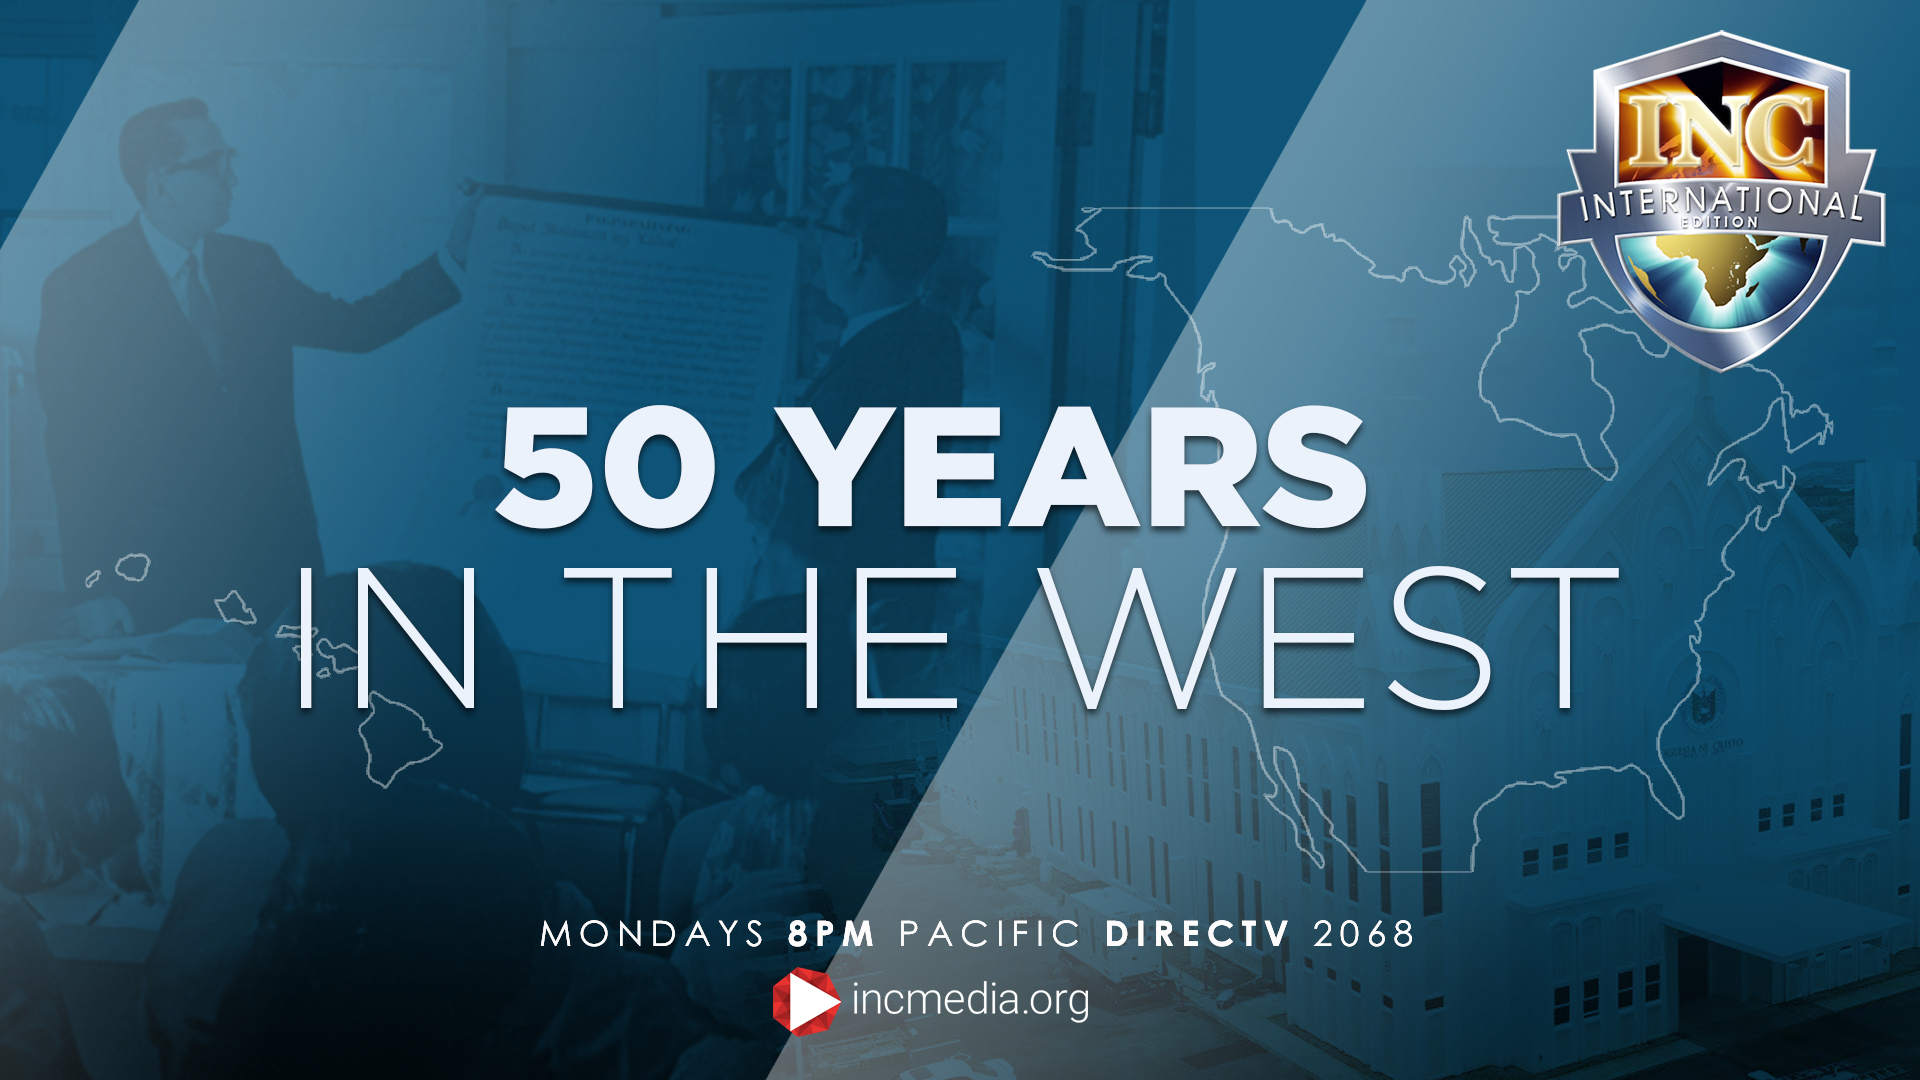 50 Years in the West